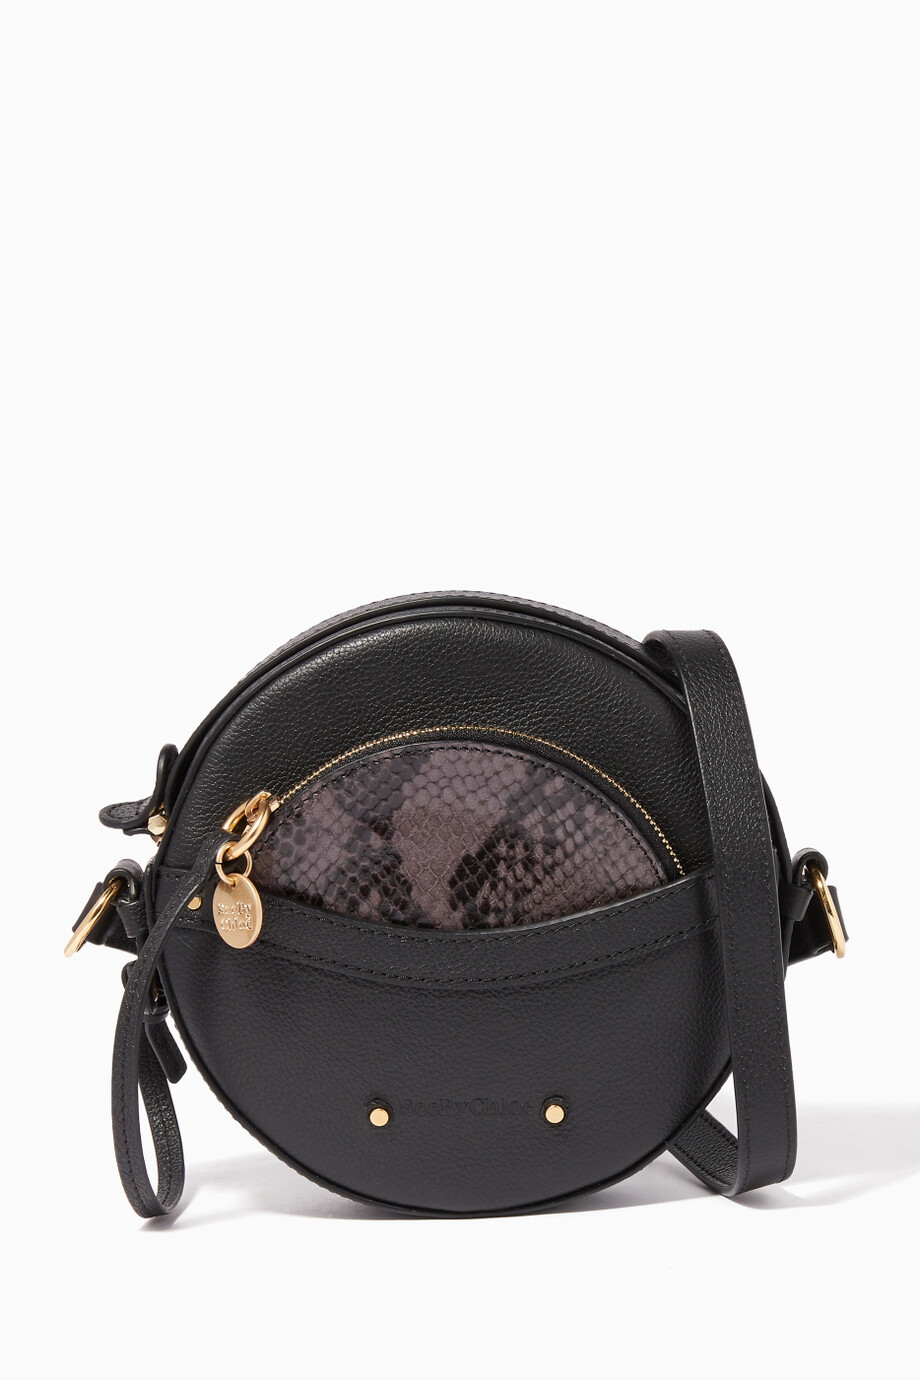 dc8139e2 Shop See By Chloé Black Black Rosy Round Shoulder Bag for Women ...